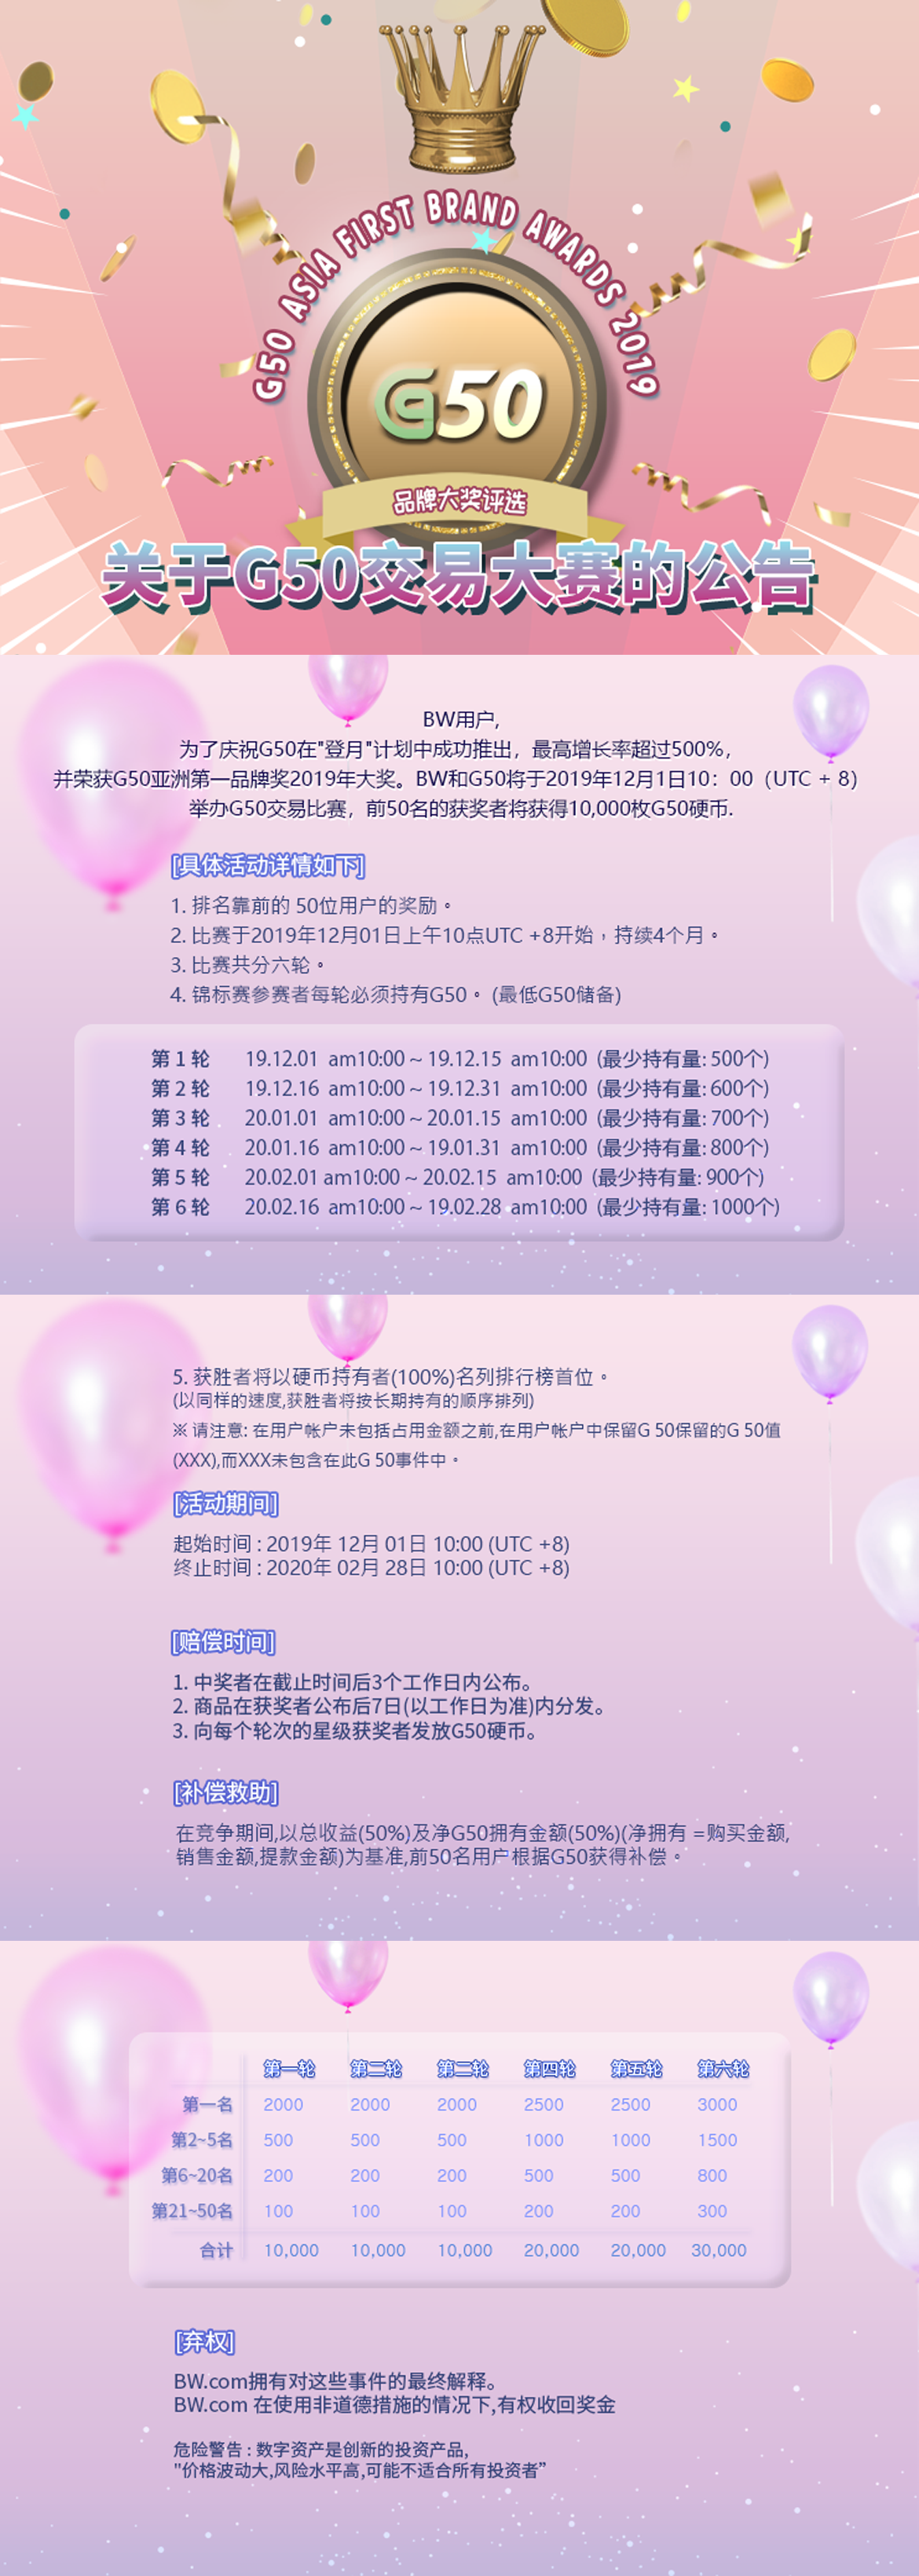 Chinese_g50_trading_contest_banners__1128_.png